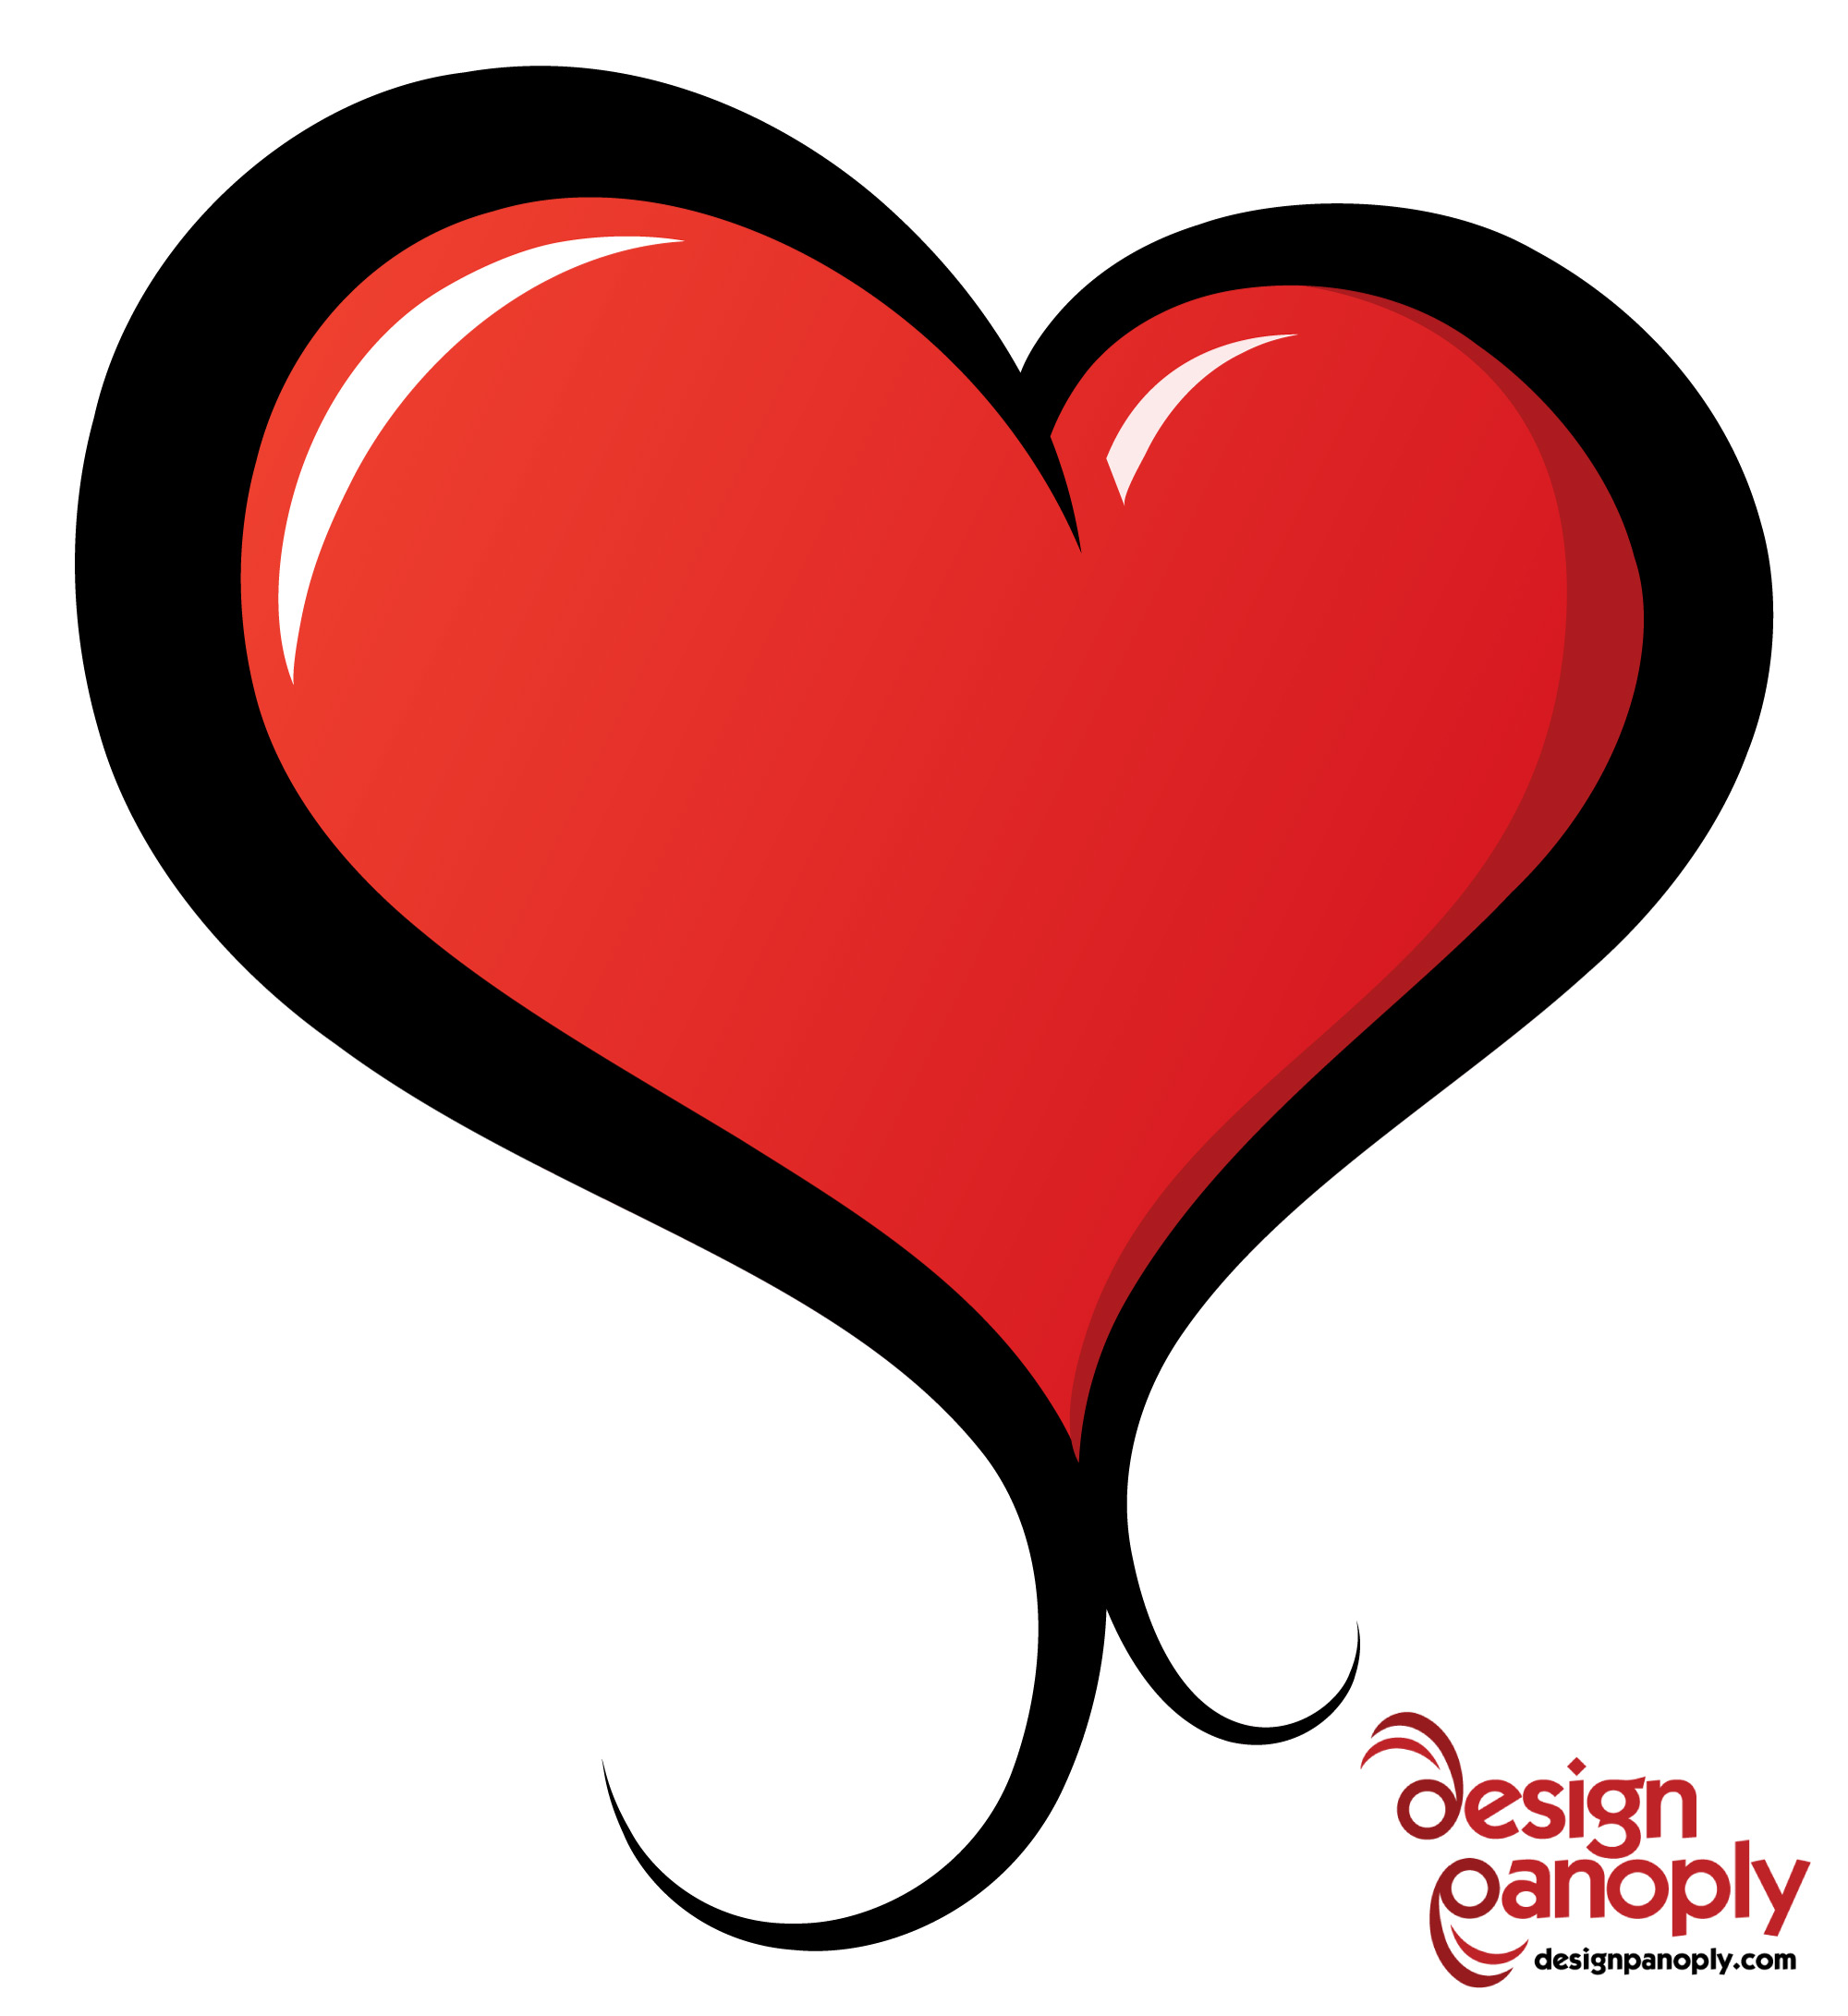 Heart Images Free Download - ClipArt Best